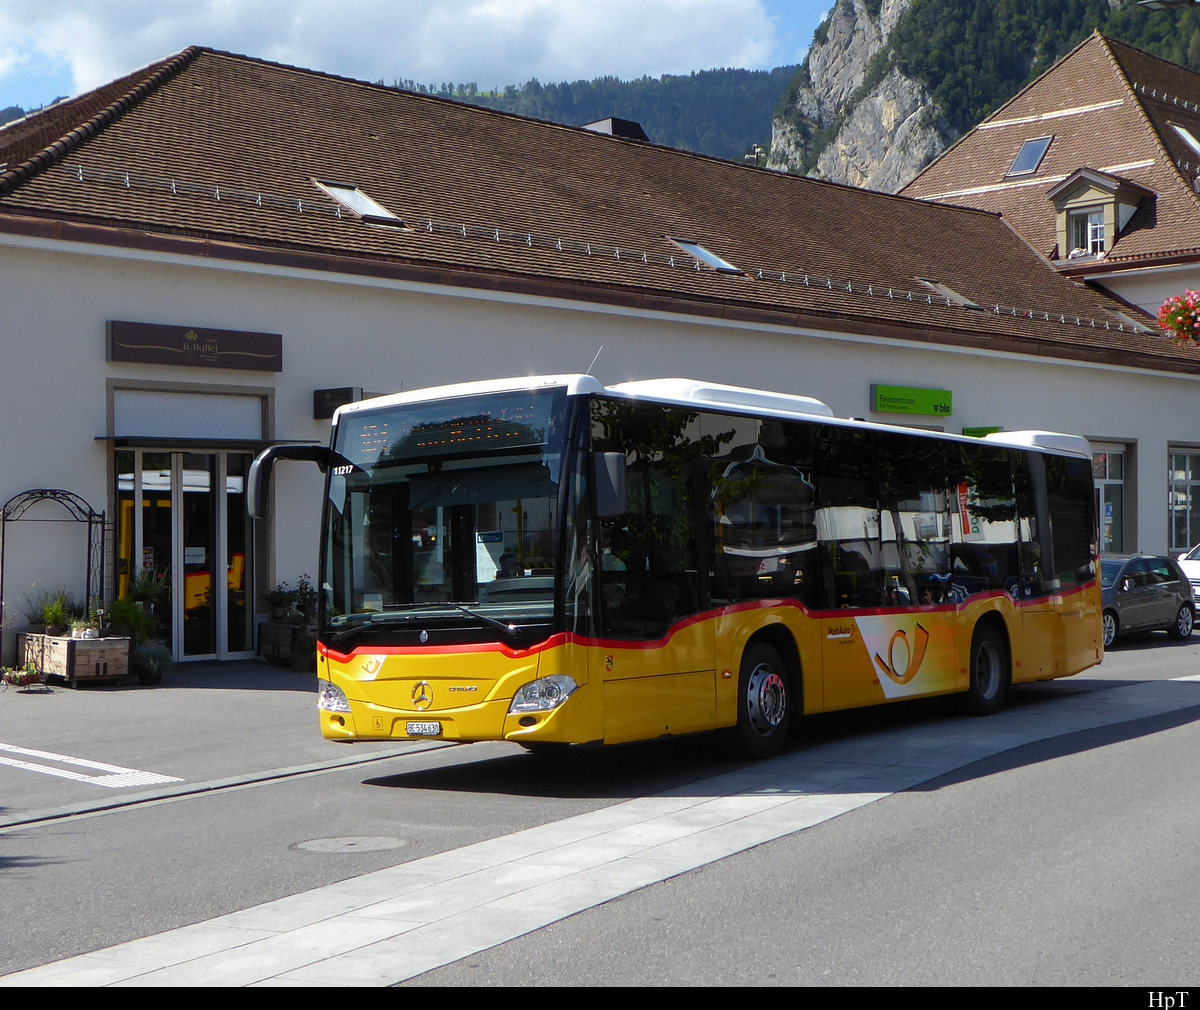 Postauto - Mercedes Citaro Hybrid  BE  534630 unterwegs in Interlaken am 25.07.2020